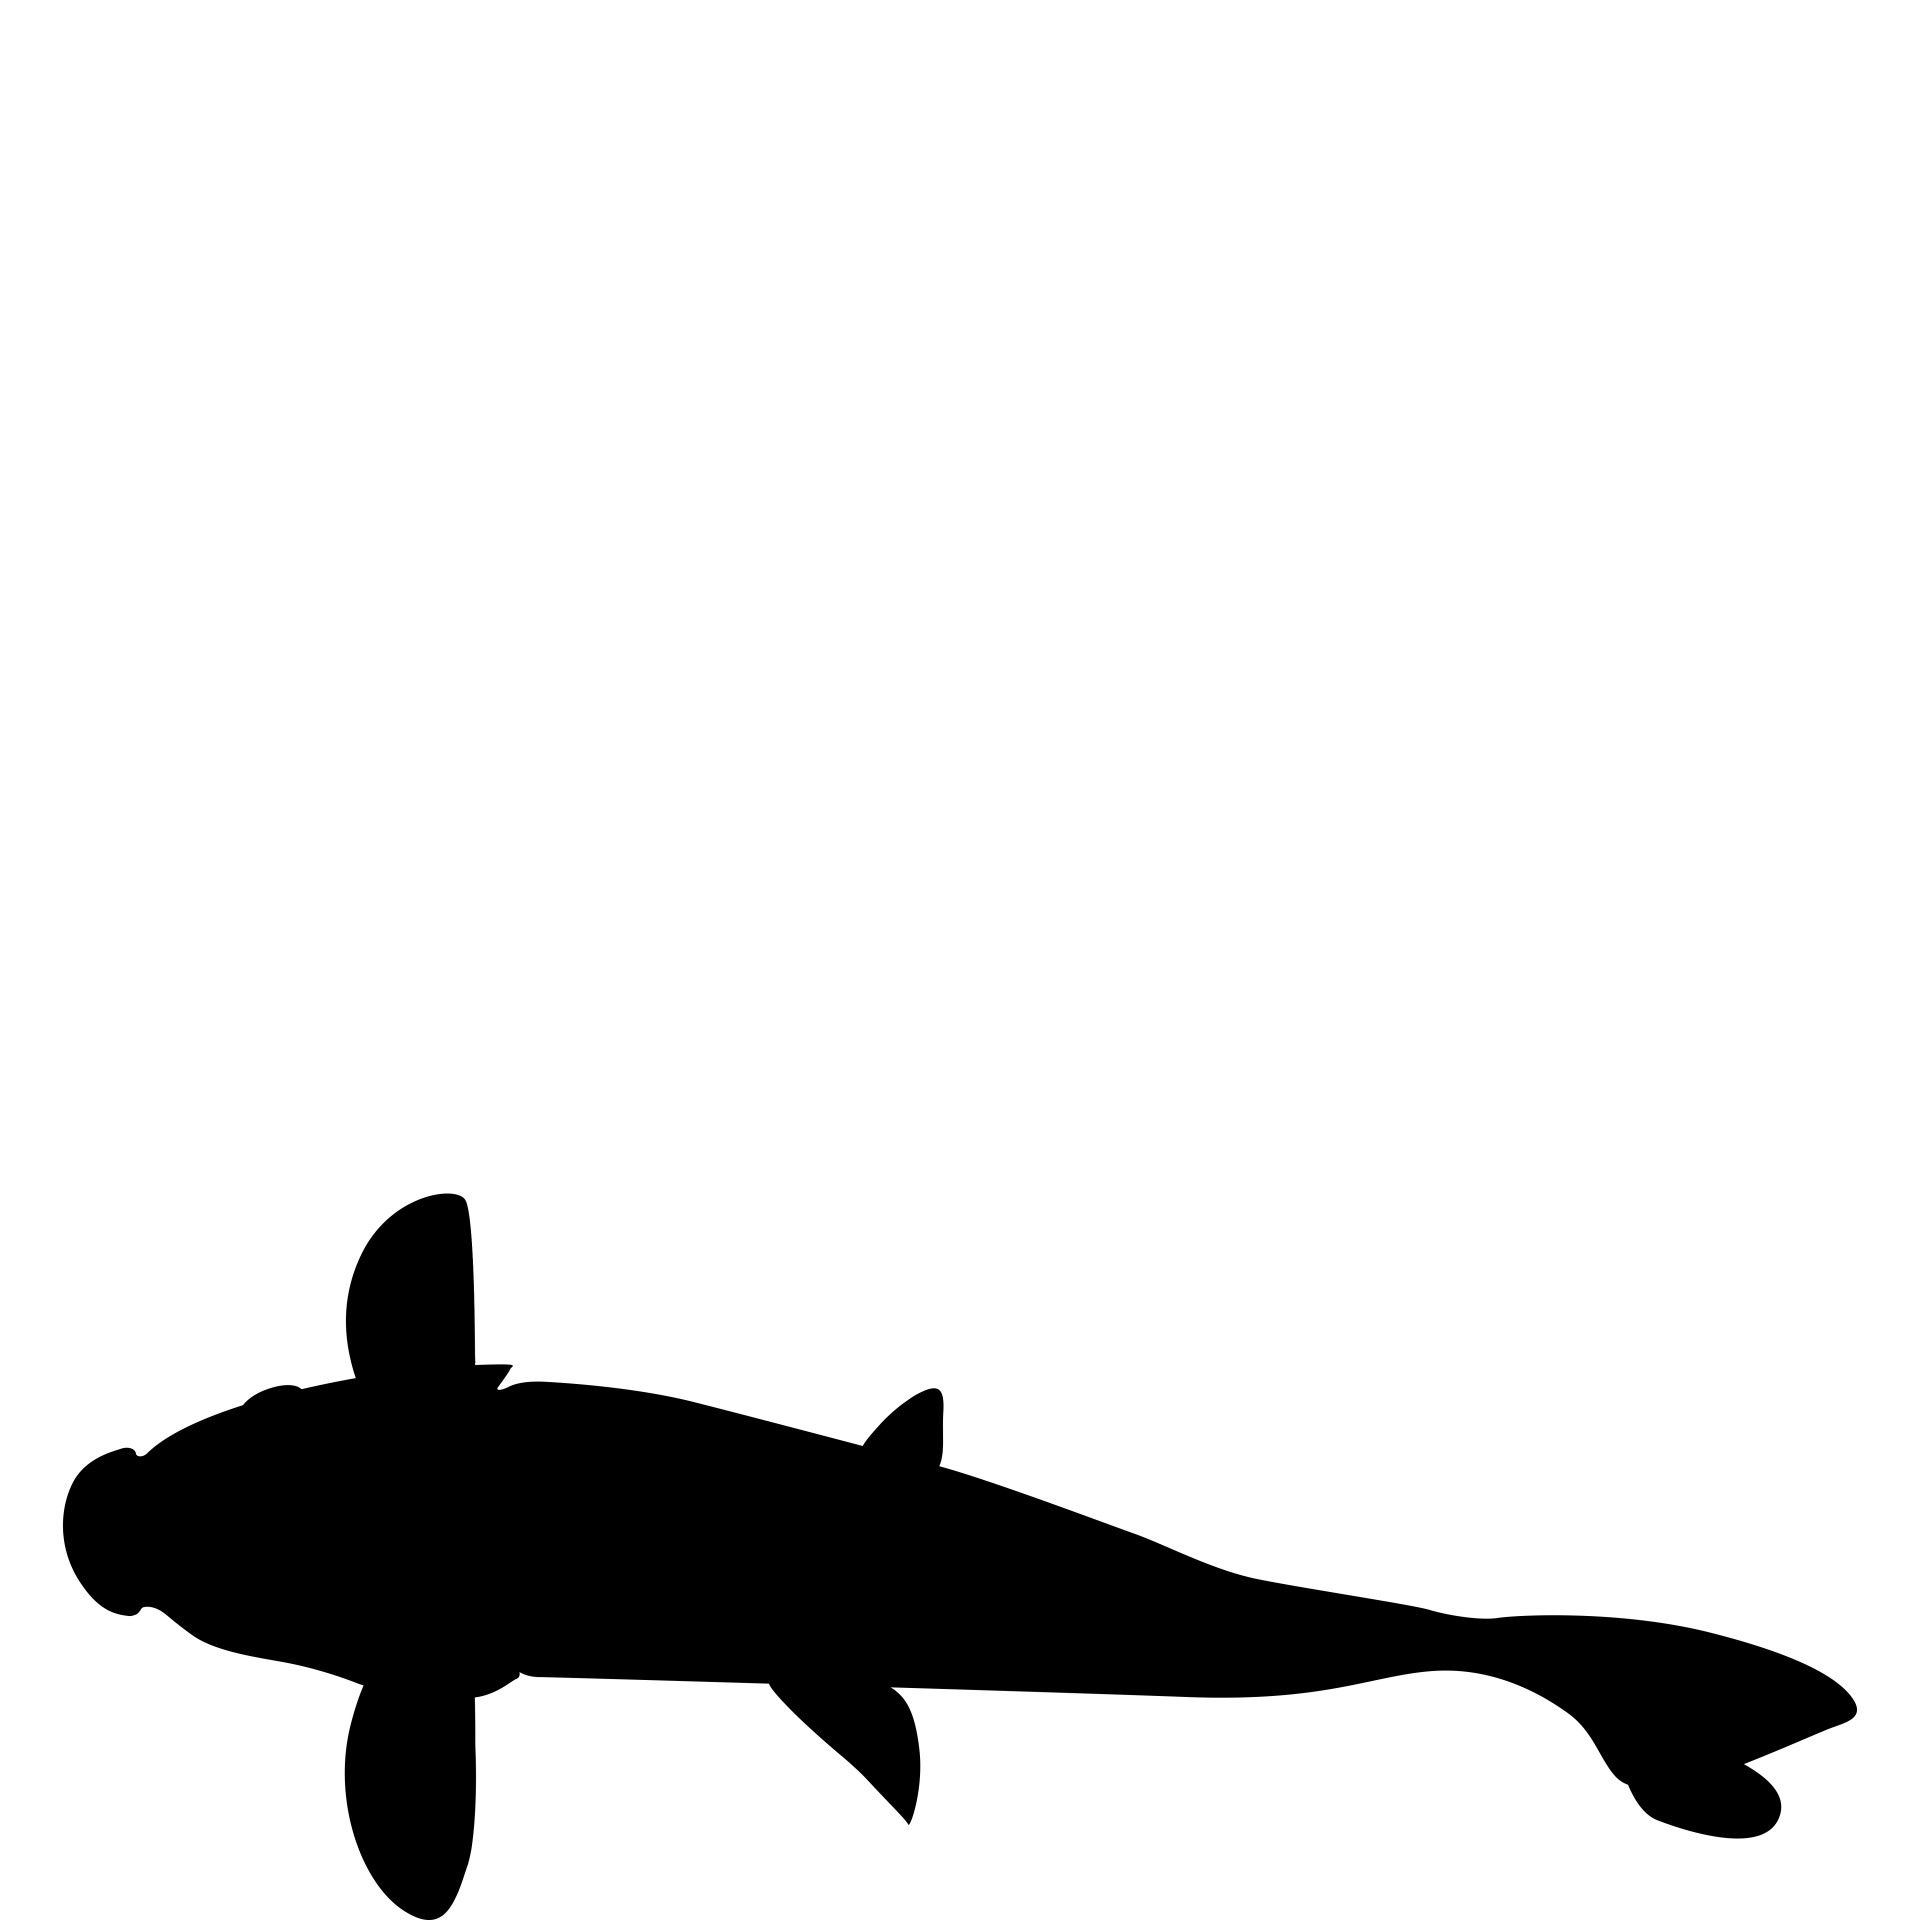 1920x1920 Image Result For Koi Fish Silhouette Koi Fish Fish